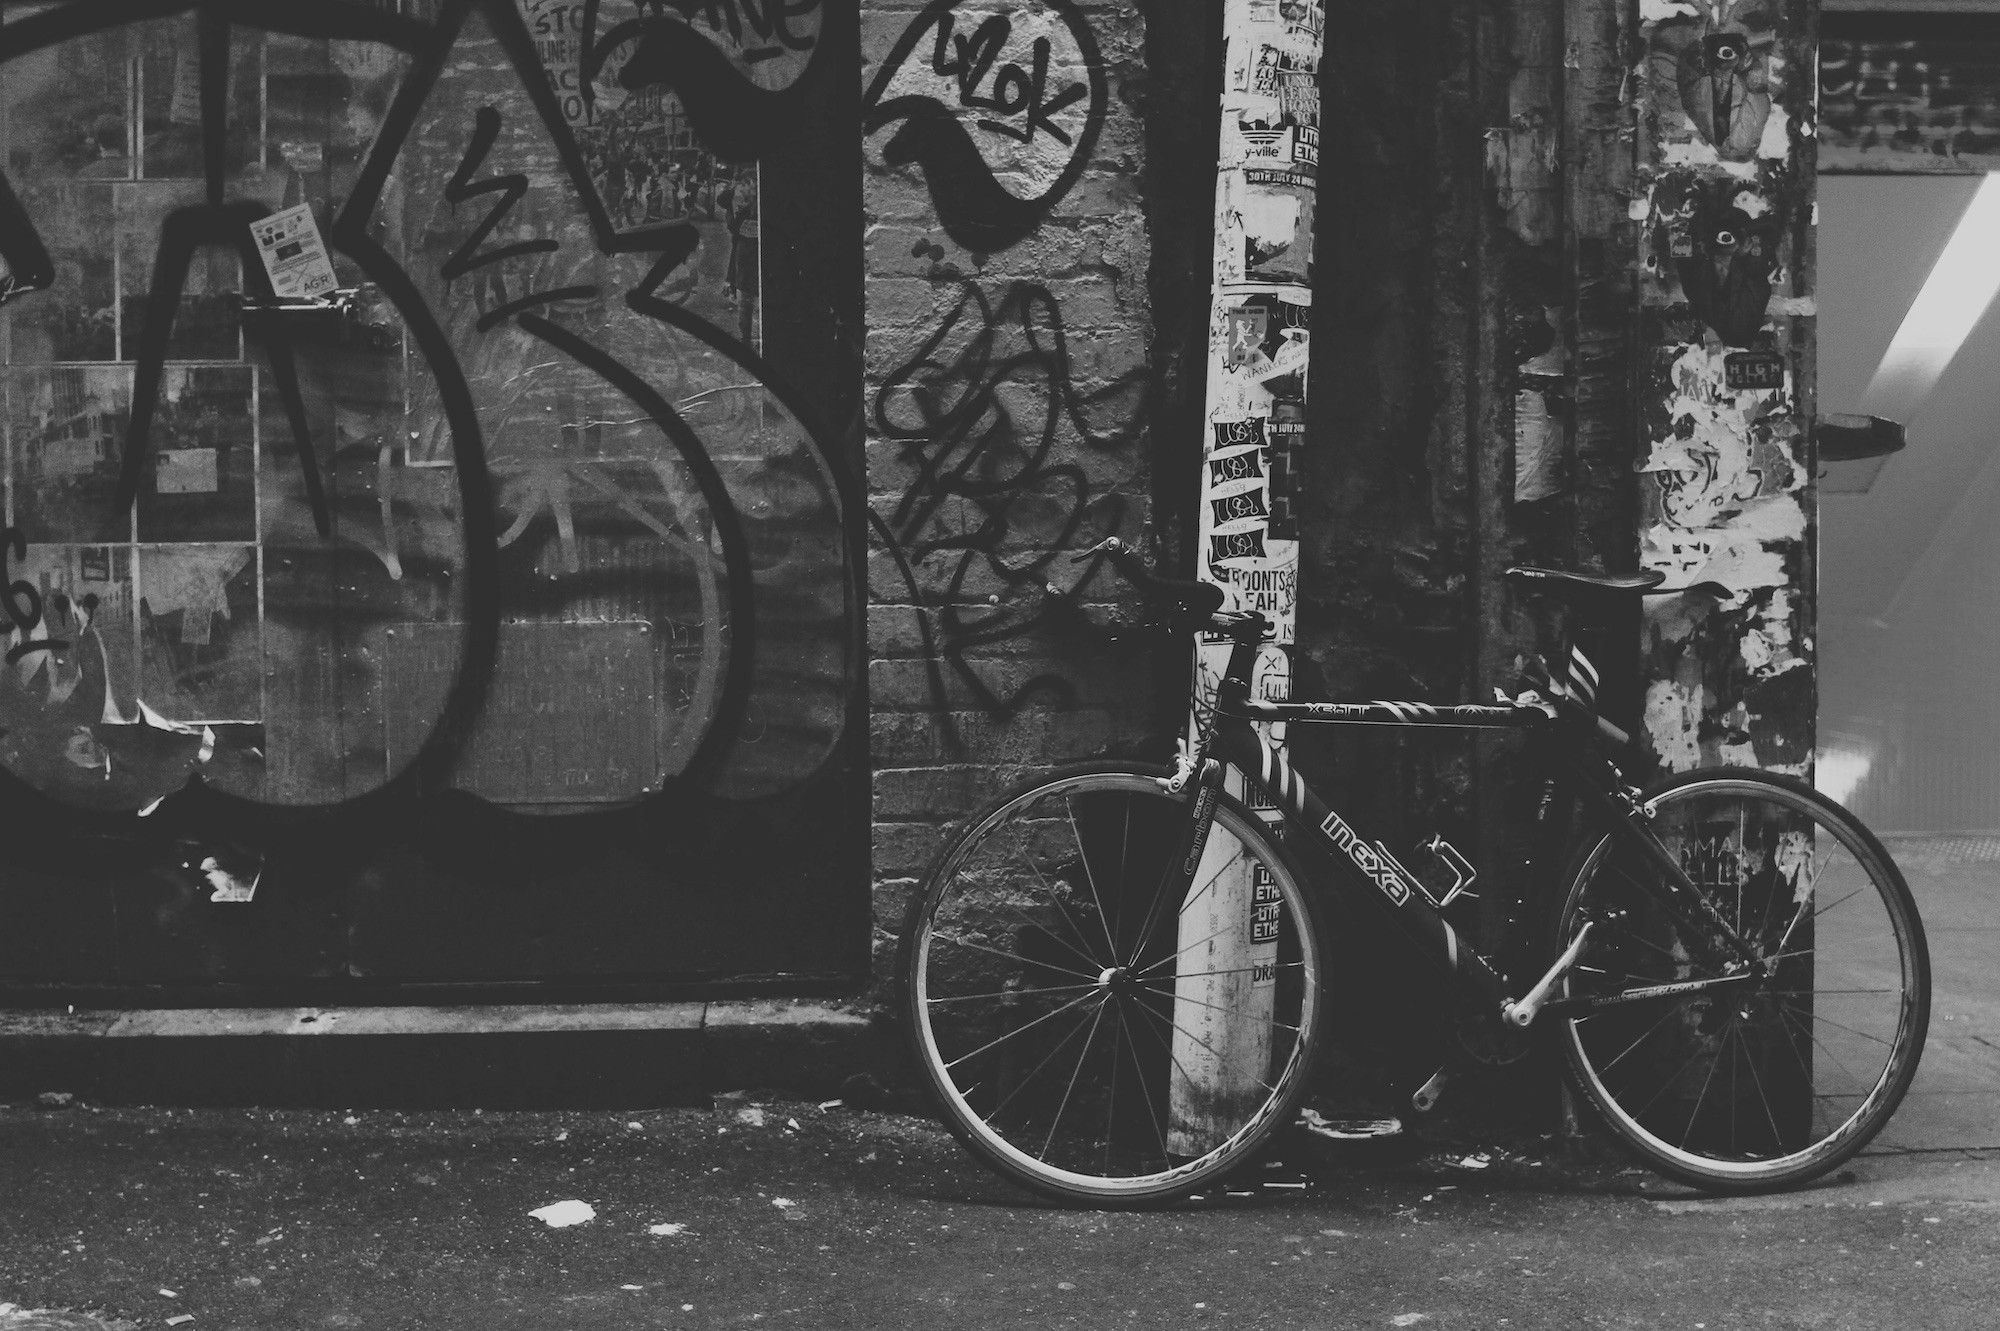 Bicycle next to graffiti wall